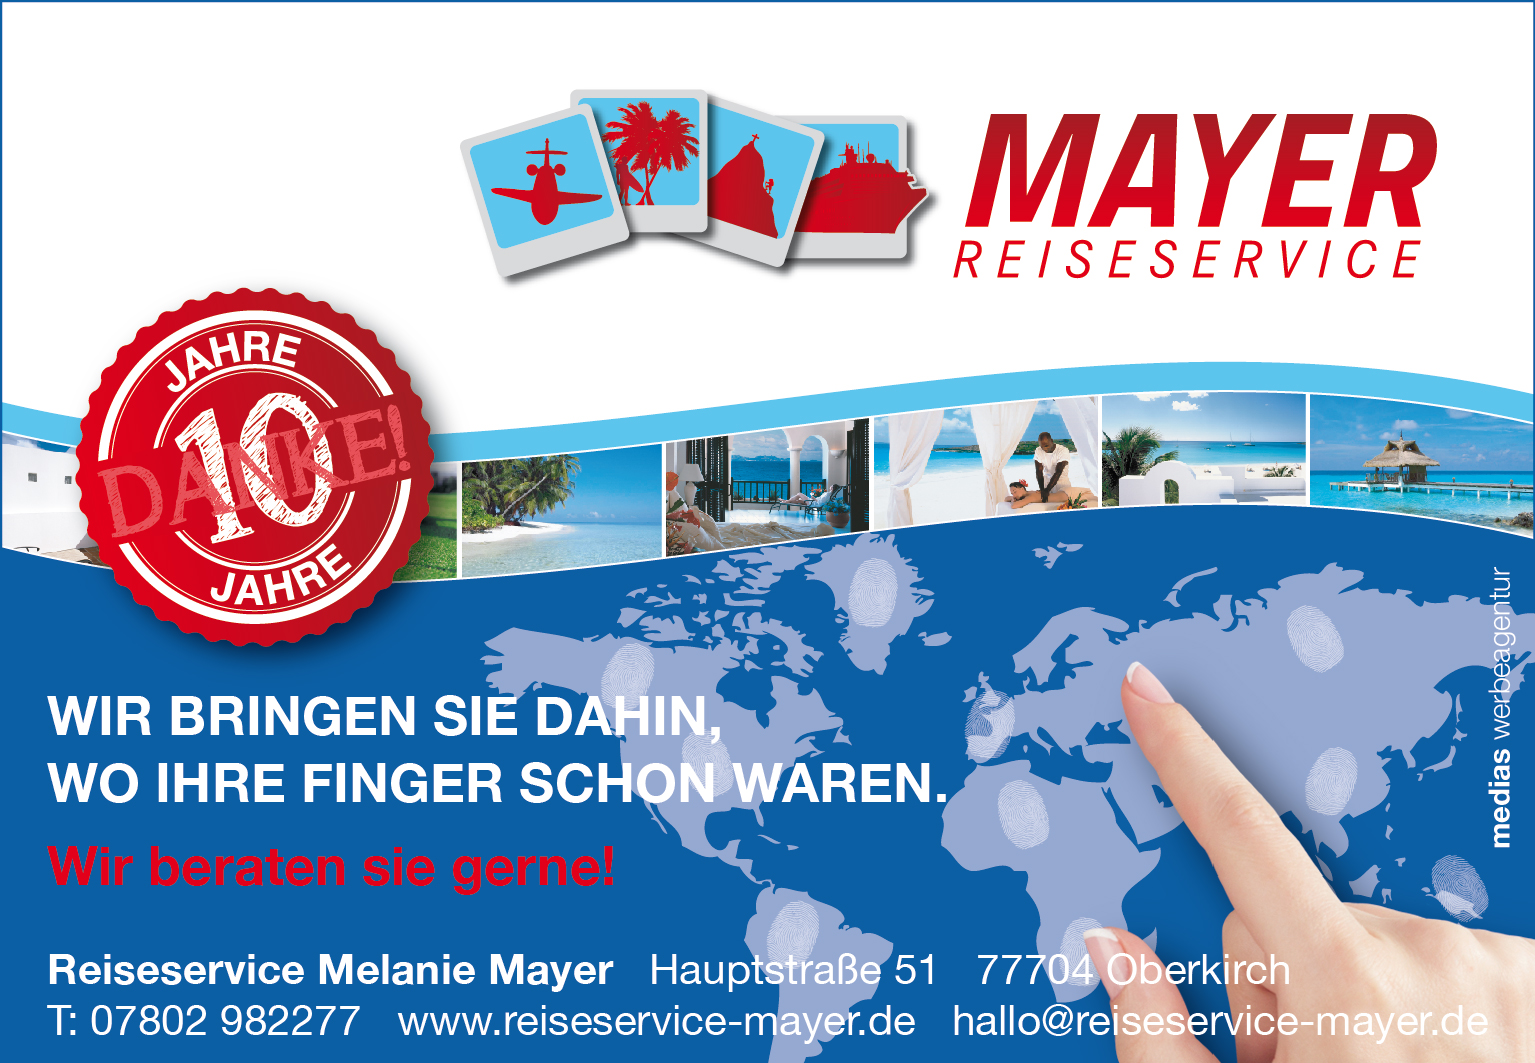 Mayer Reiseservice